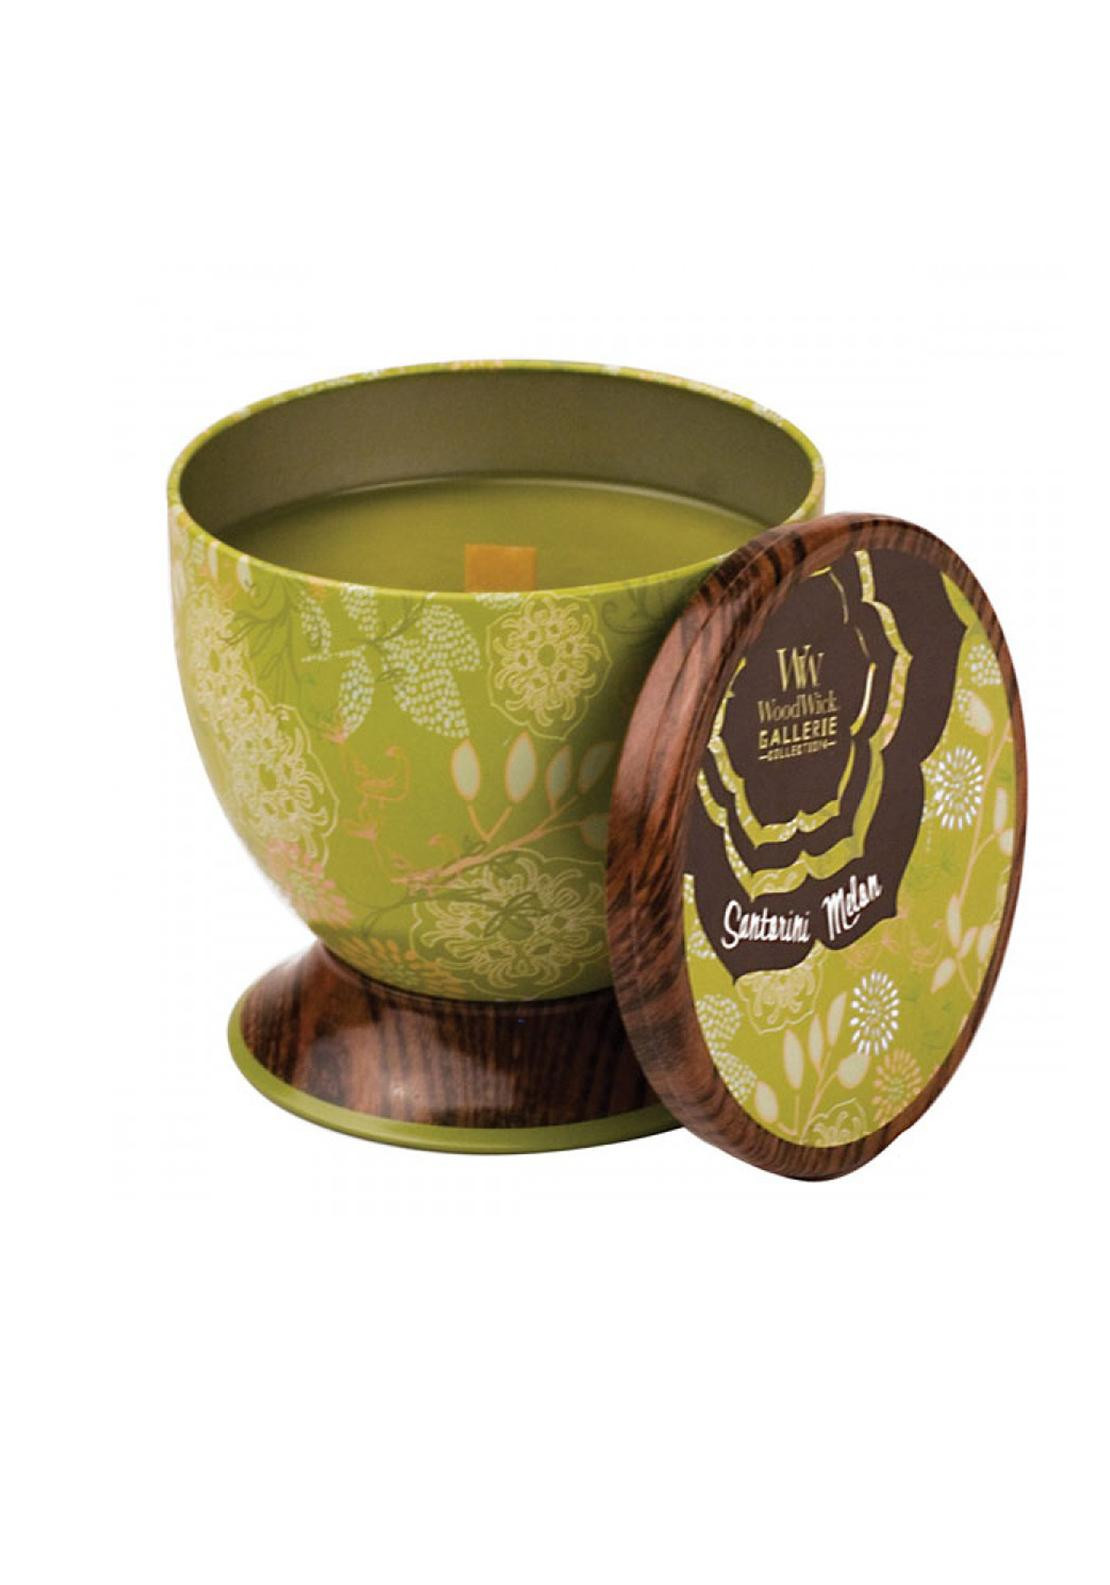 Woodwick Gallerie Collection, Scented Candle, Santorini Melon